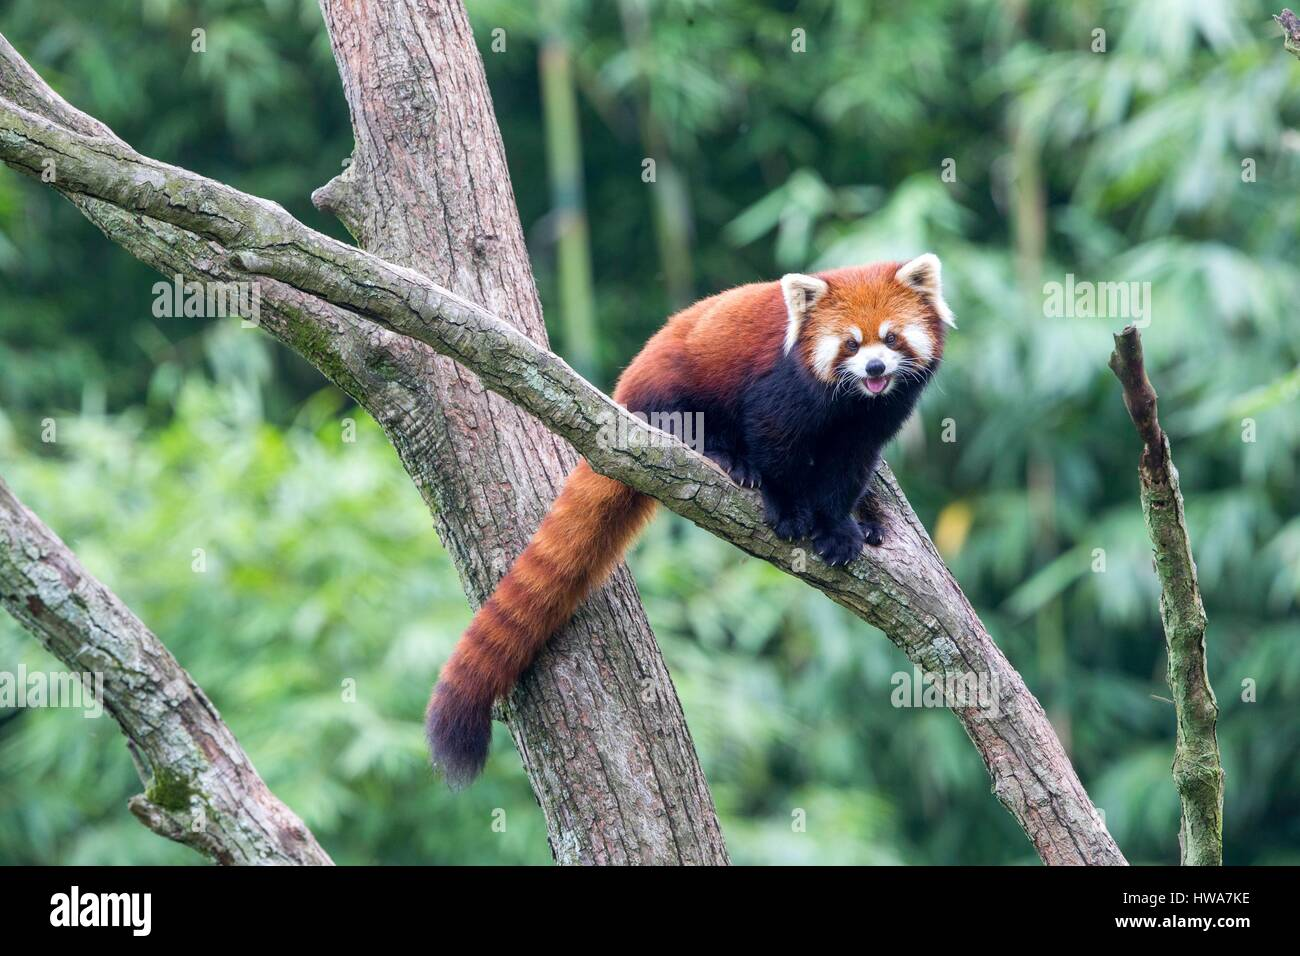 China, Sichuan, Research Base of Giant Panda Breeding or Chengdu Panda Base, Red Panda (Ailurus fulgens), captive, Stock Photo